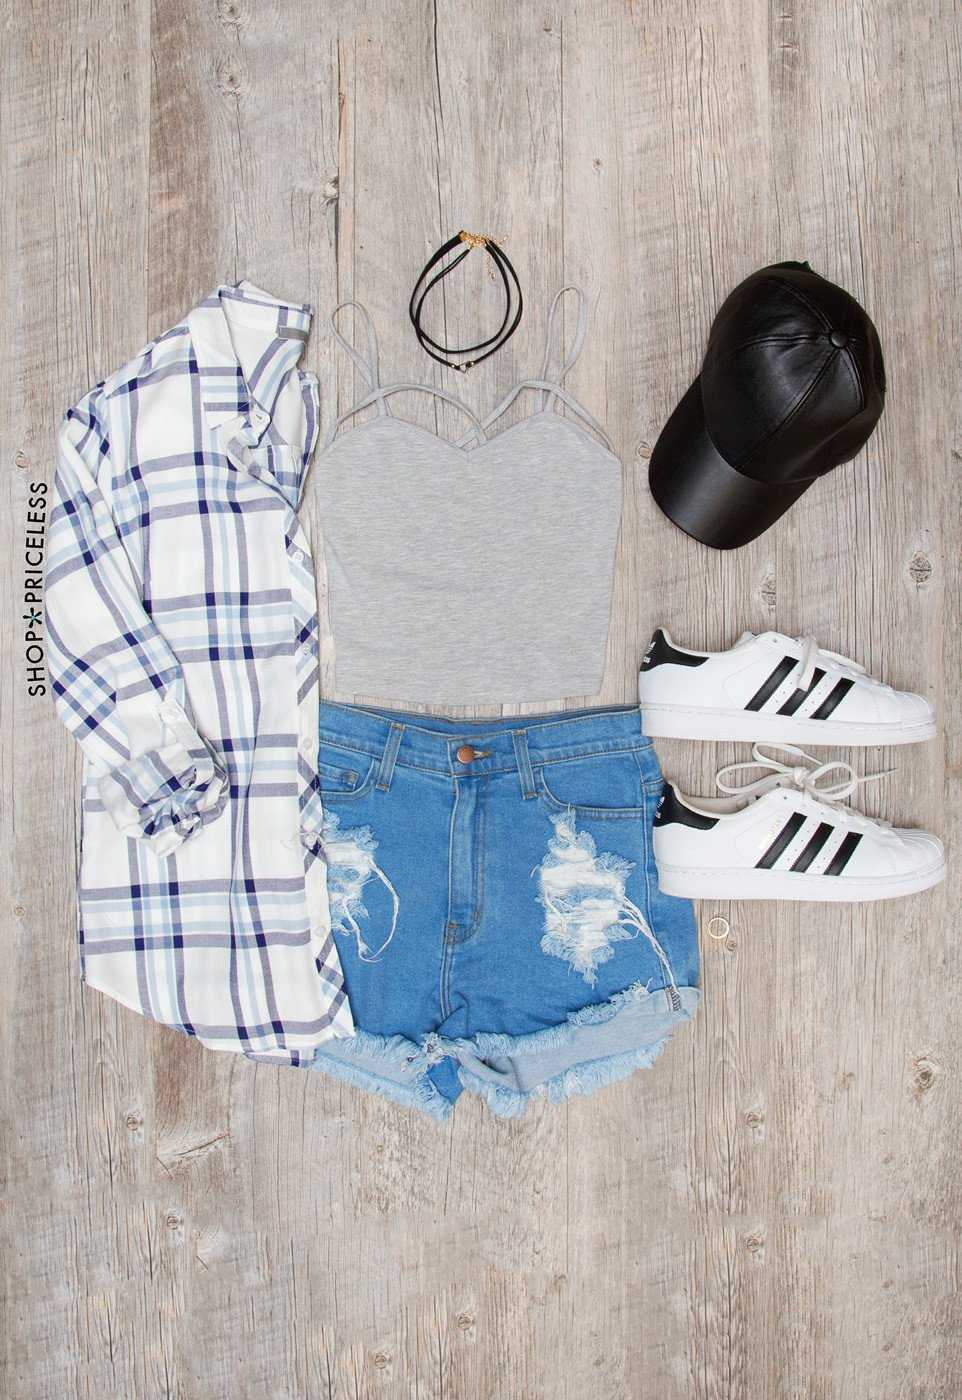 Tops - Genie Crop Top - Gray